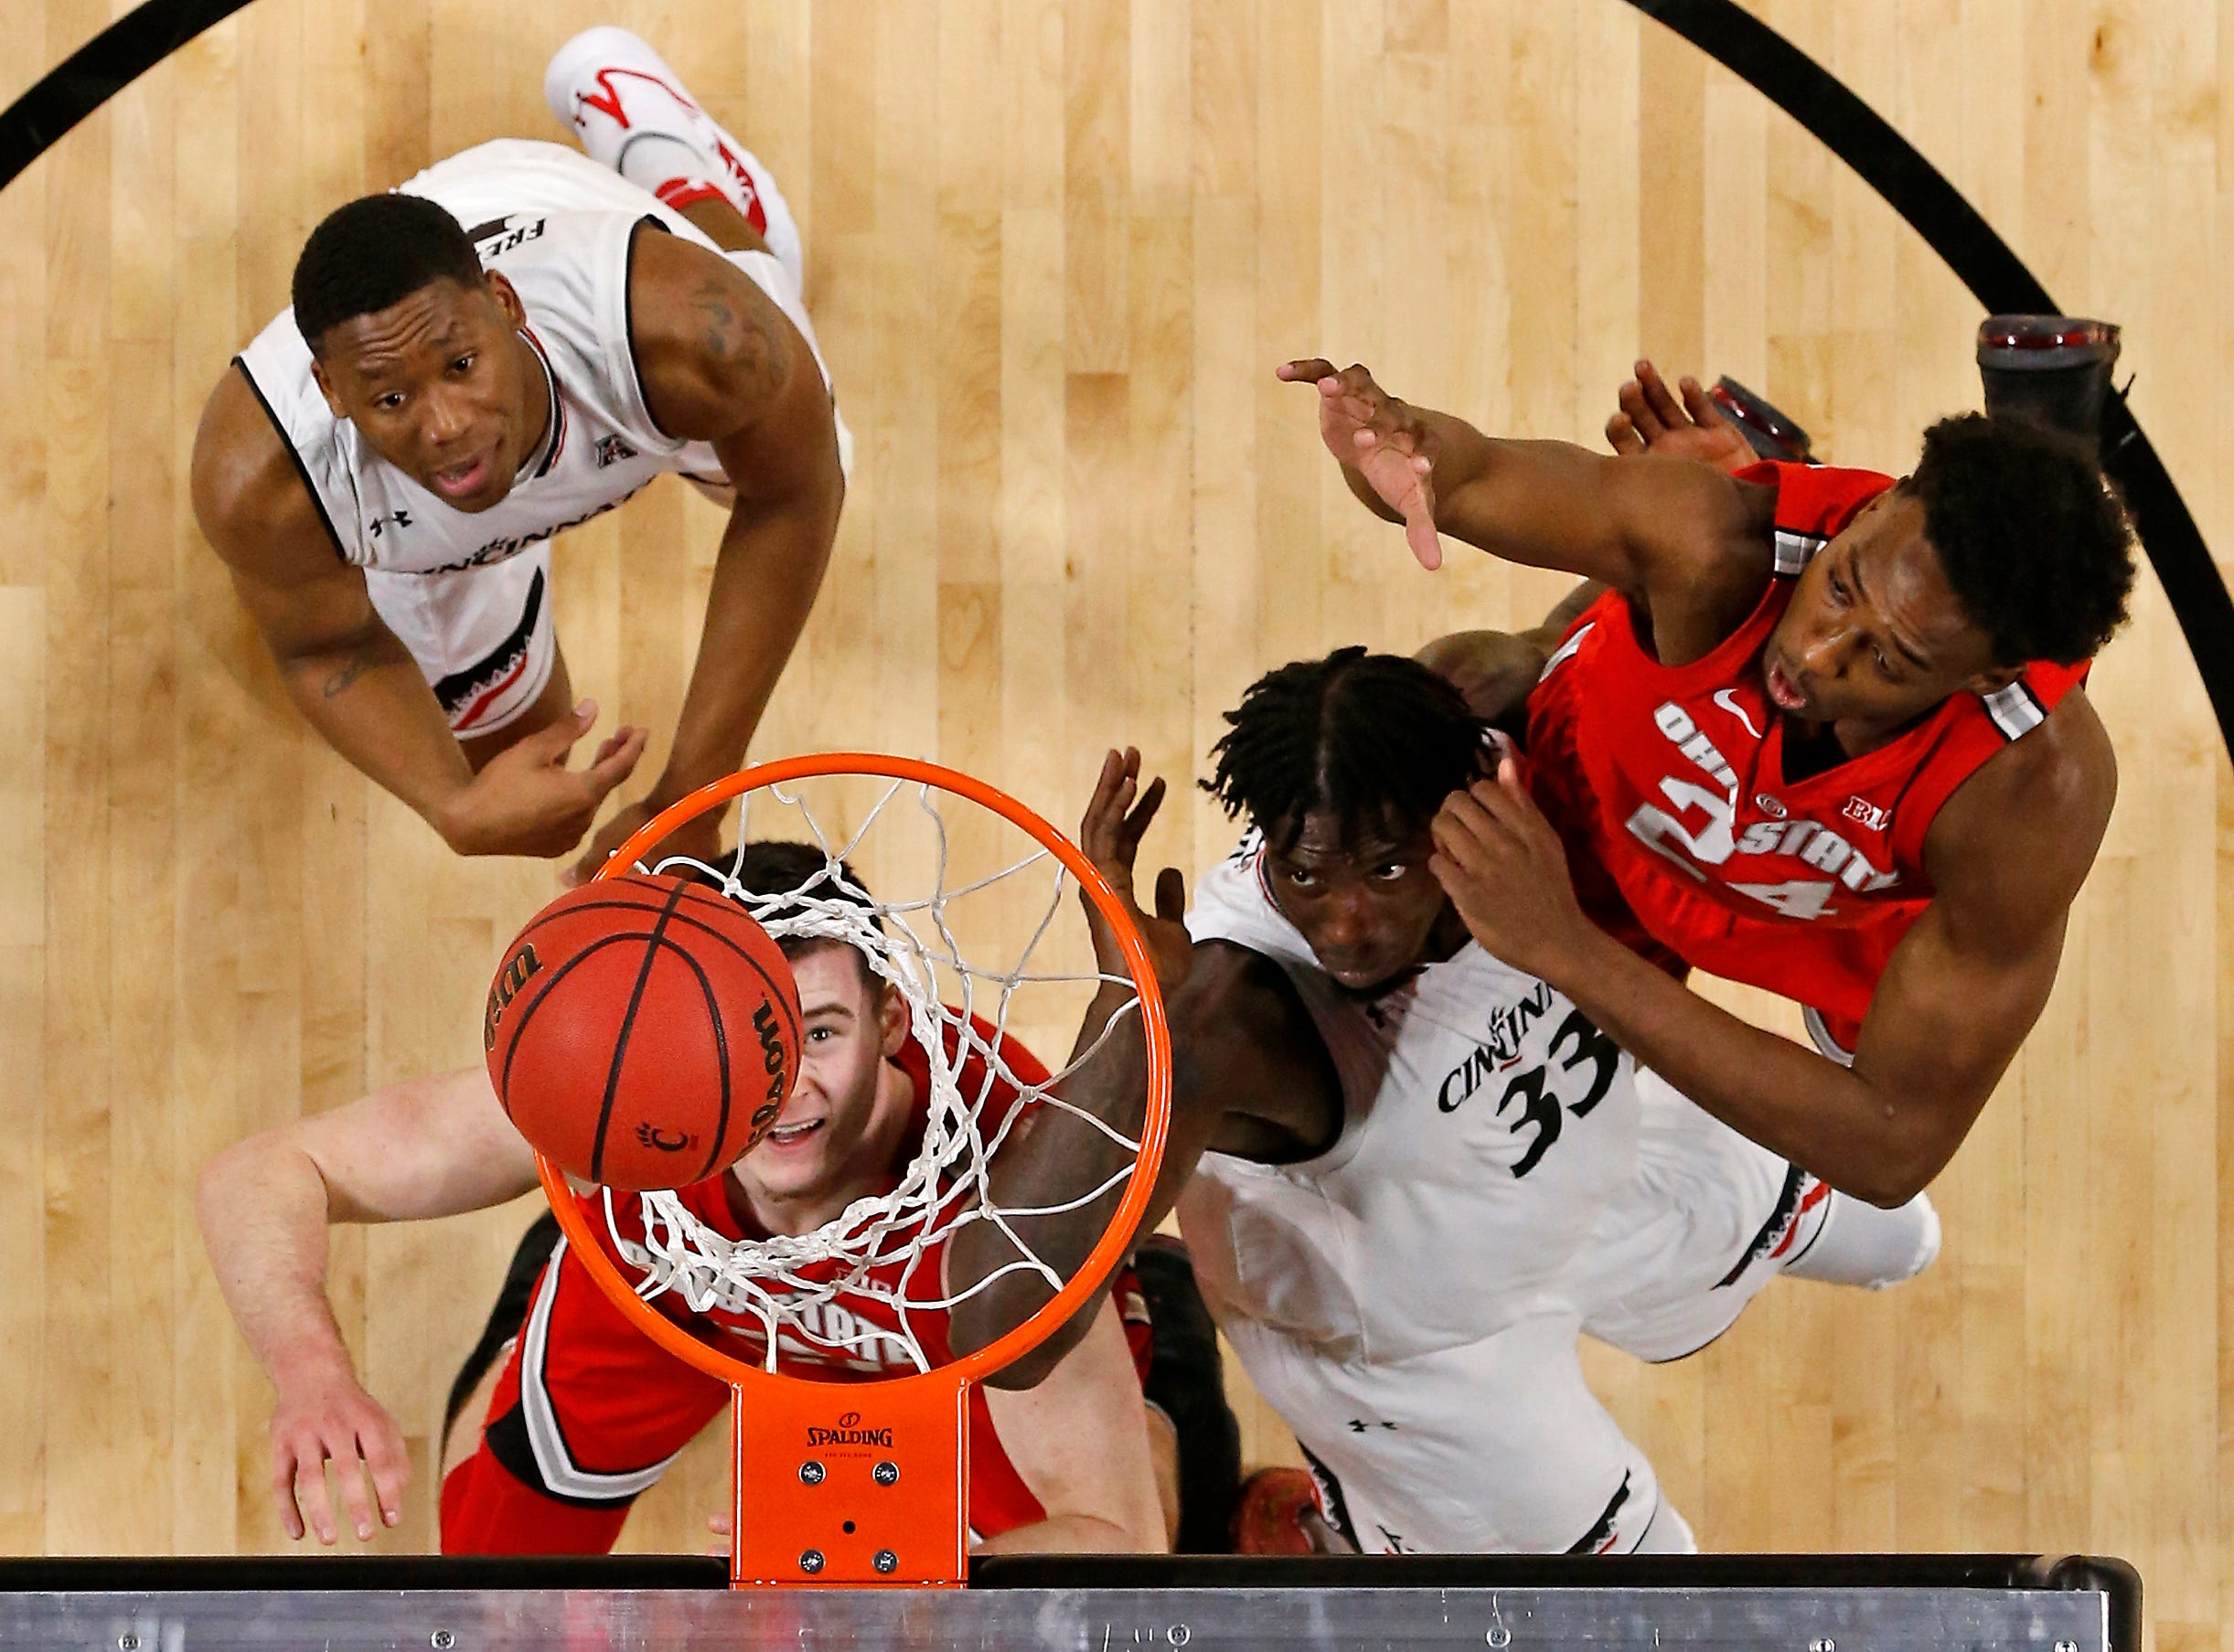 Ohio State Buckeyes forward Kyle Young (25) scores a basket in the first half of the NCAA basketball game between the Cincinnati Bearcats and the Ohio State Buckeyes at Fifth Third Arena in Cincinnati on Wednesday, Nov. 7, 2018. The Bearcats opened the season 0-1 with a 64-56 loss the Ohio State.